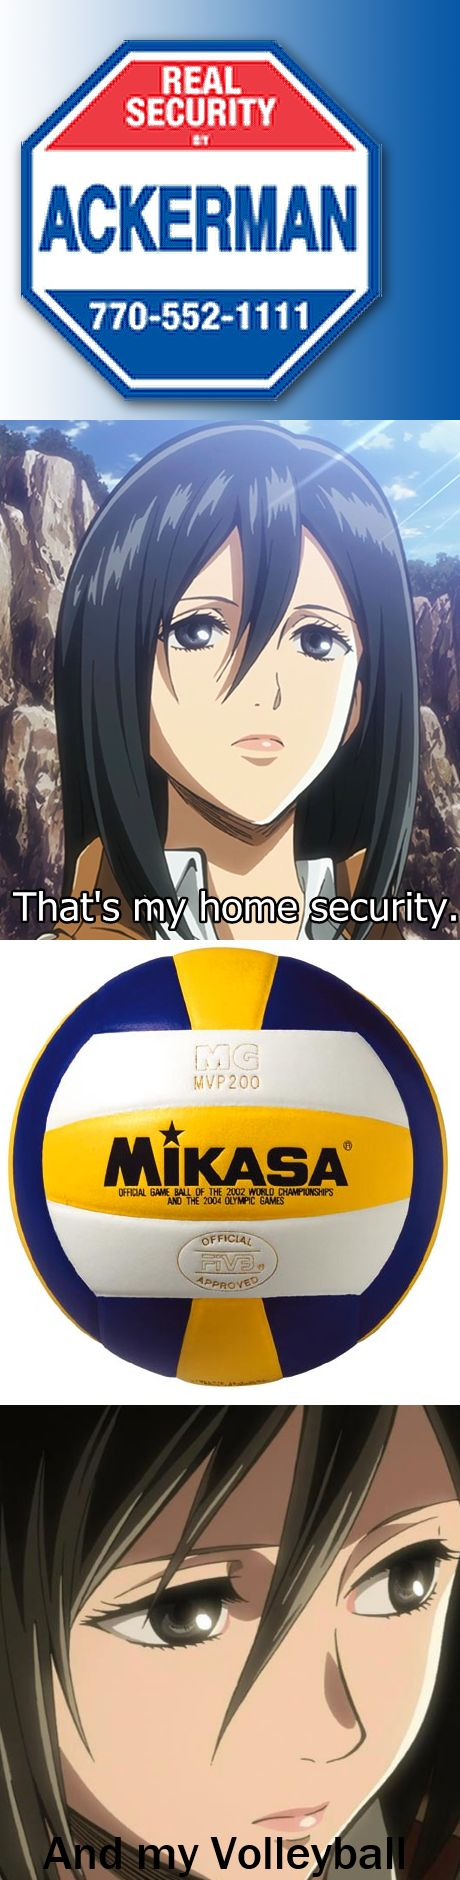 Lol when I serve a volleyball I make sure I can see mikasa's name on the ball. Then i try to hit that spot. I don't hate mikasa. But it's a good way to get the ball over